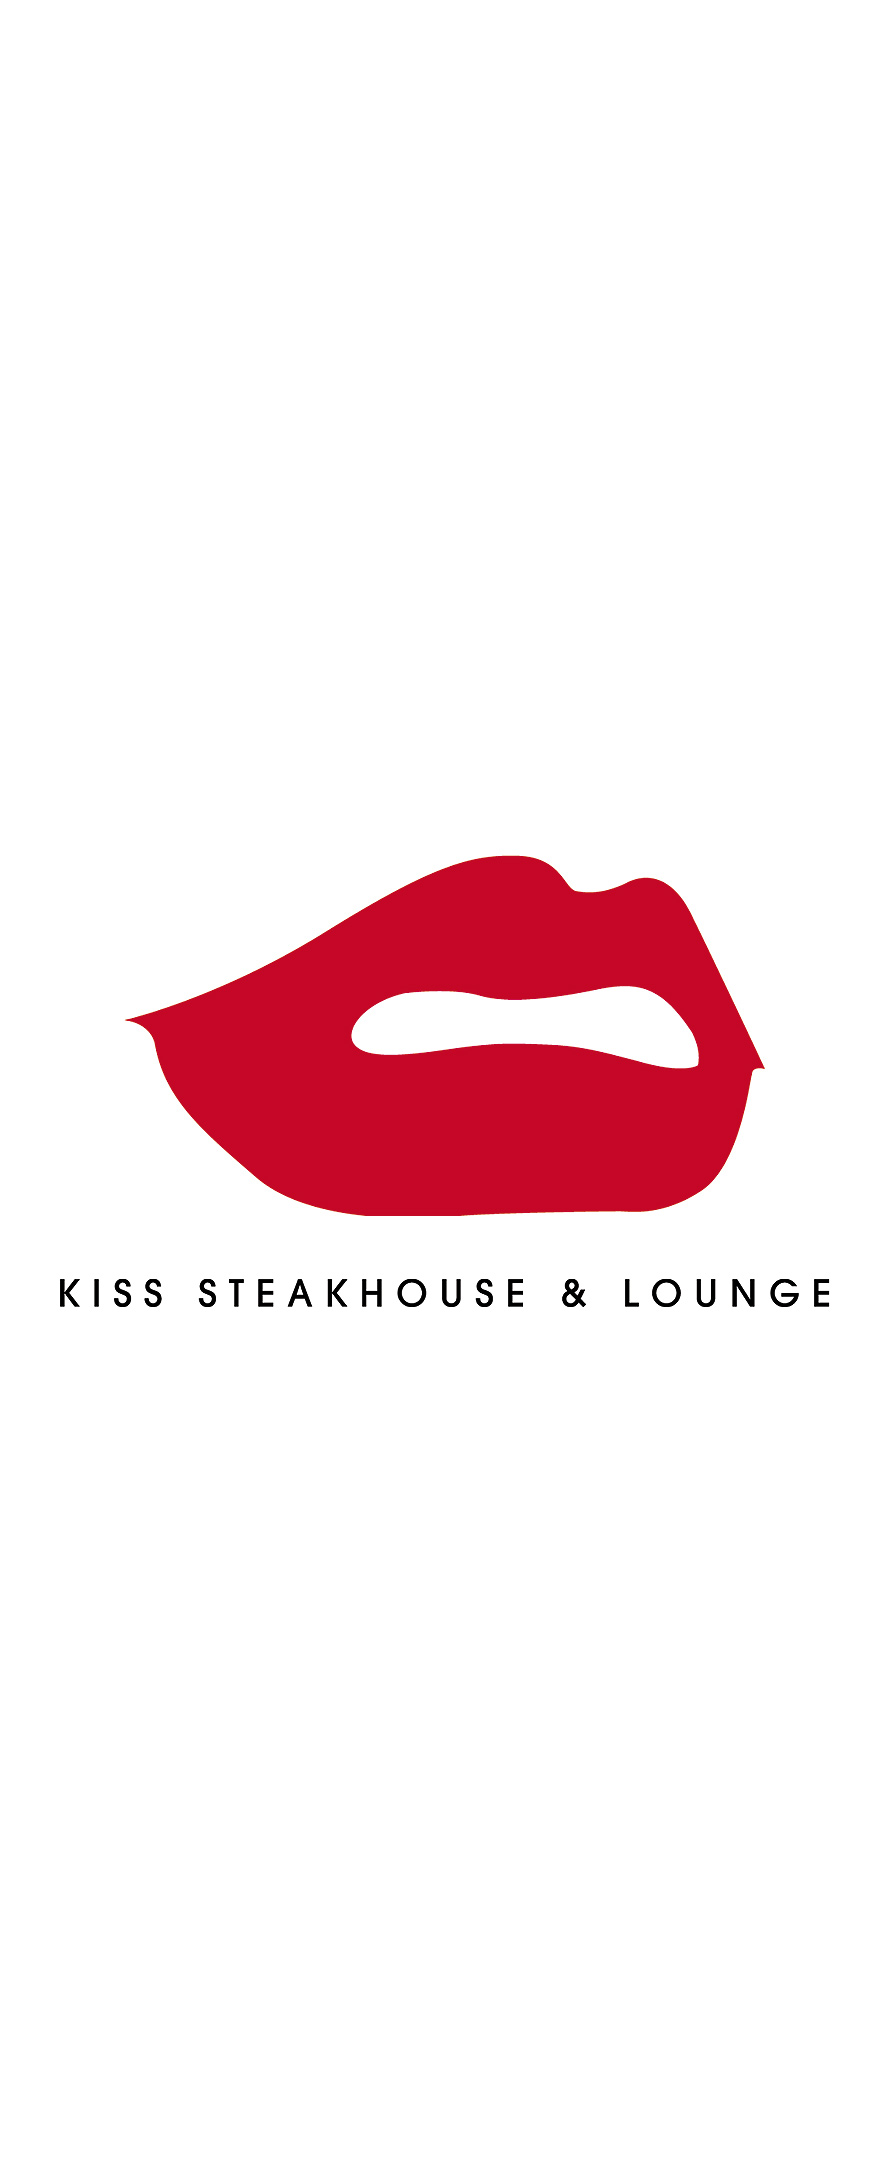 Kiss Steakhouse and Lounge